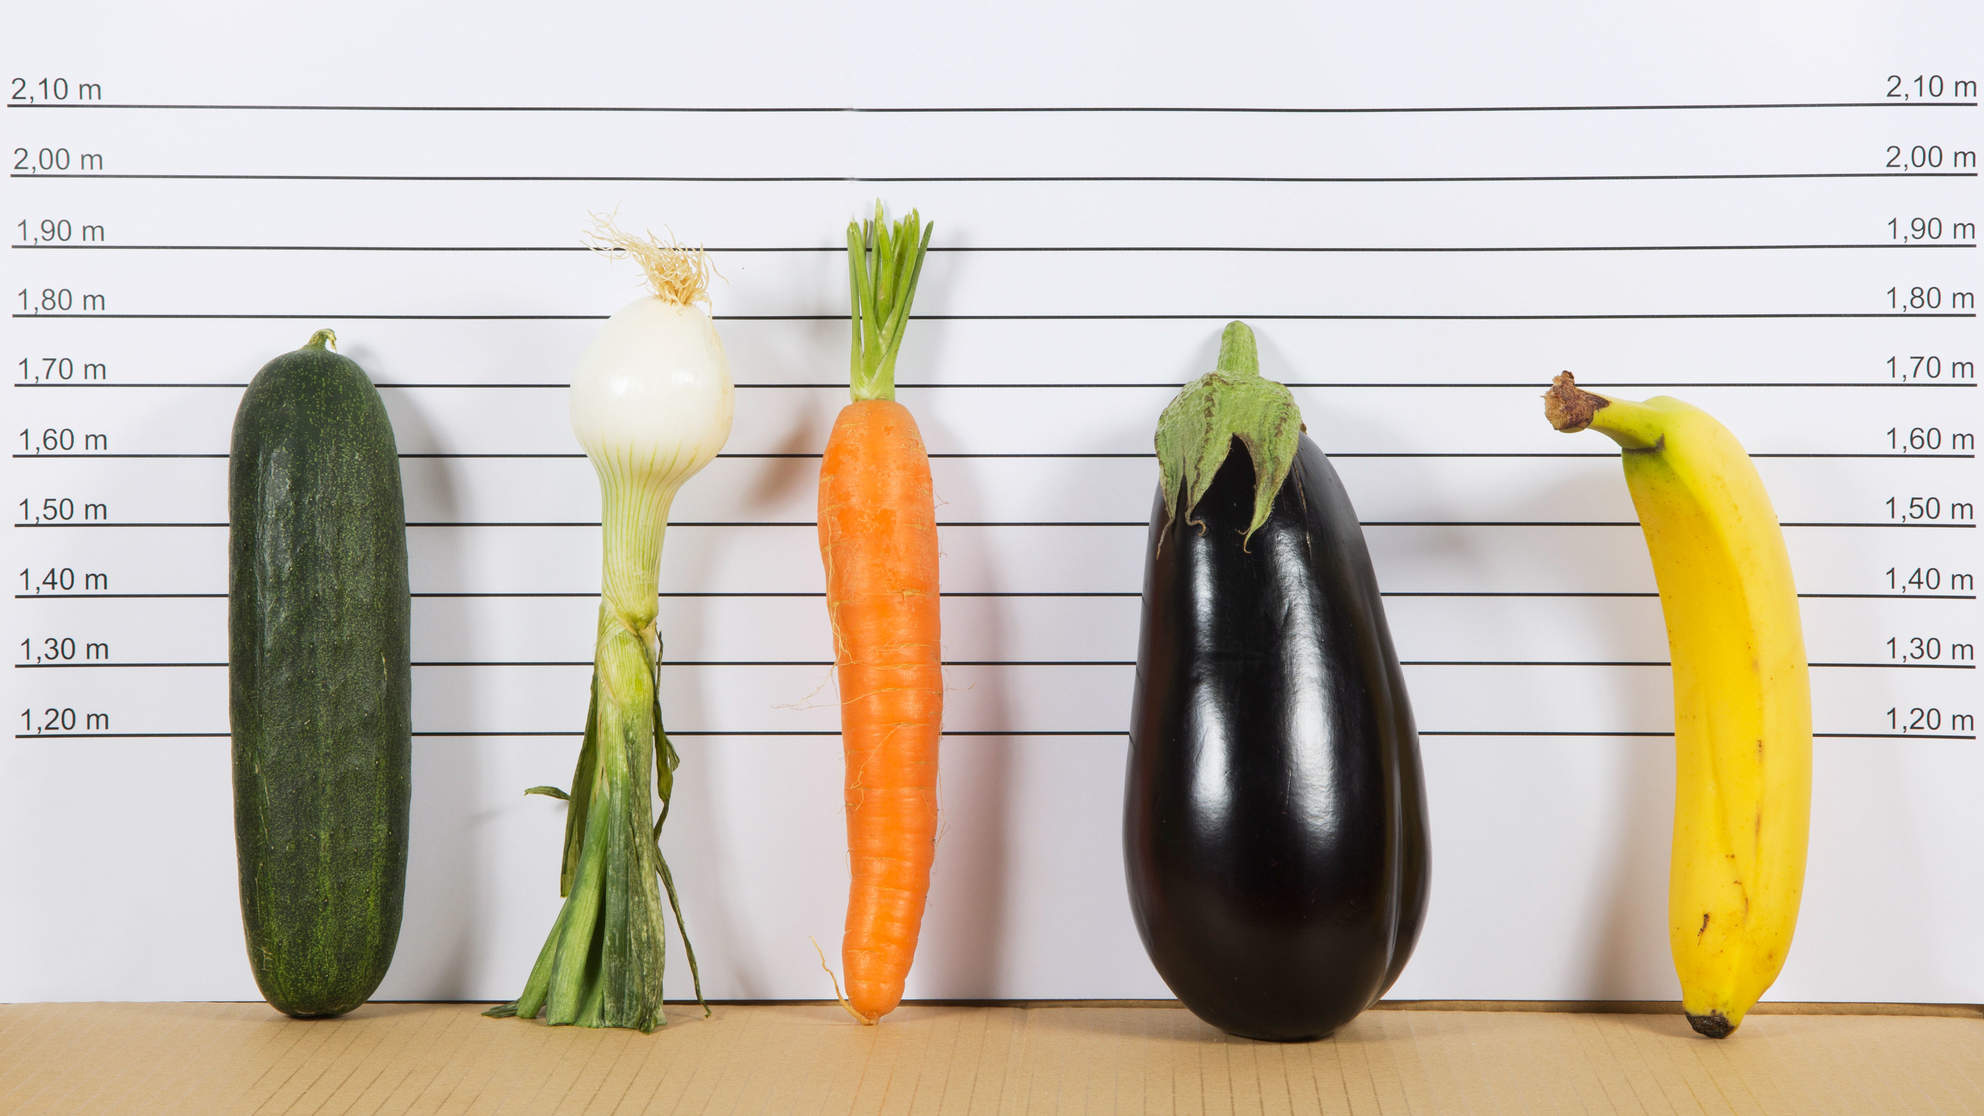 What Makes a 'Good-Looking Penis,' According to Science